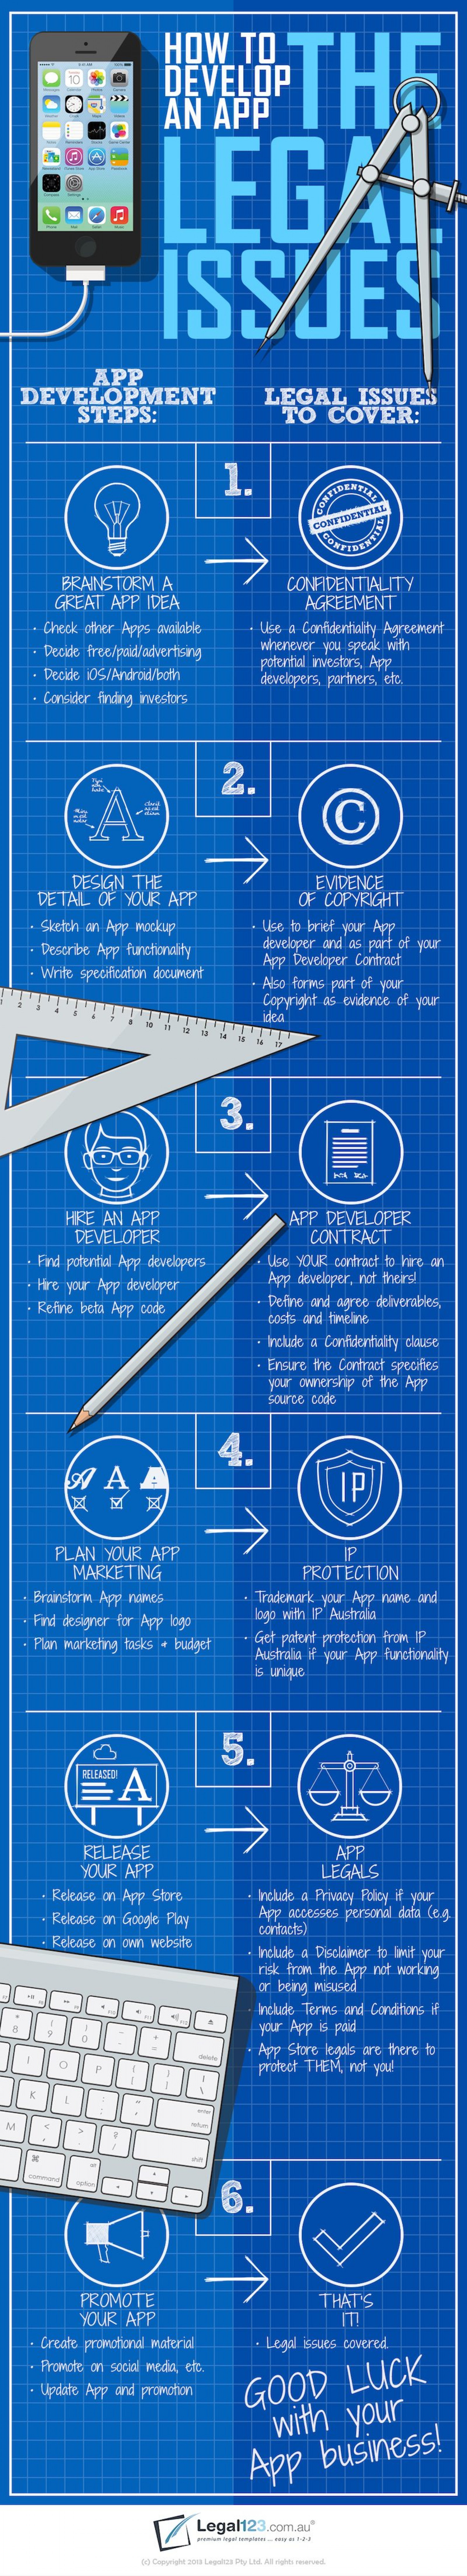 Developing an App: The Legal Issues Infographic